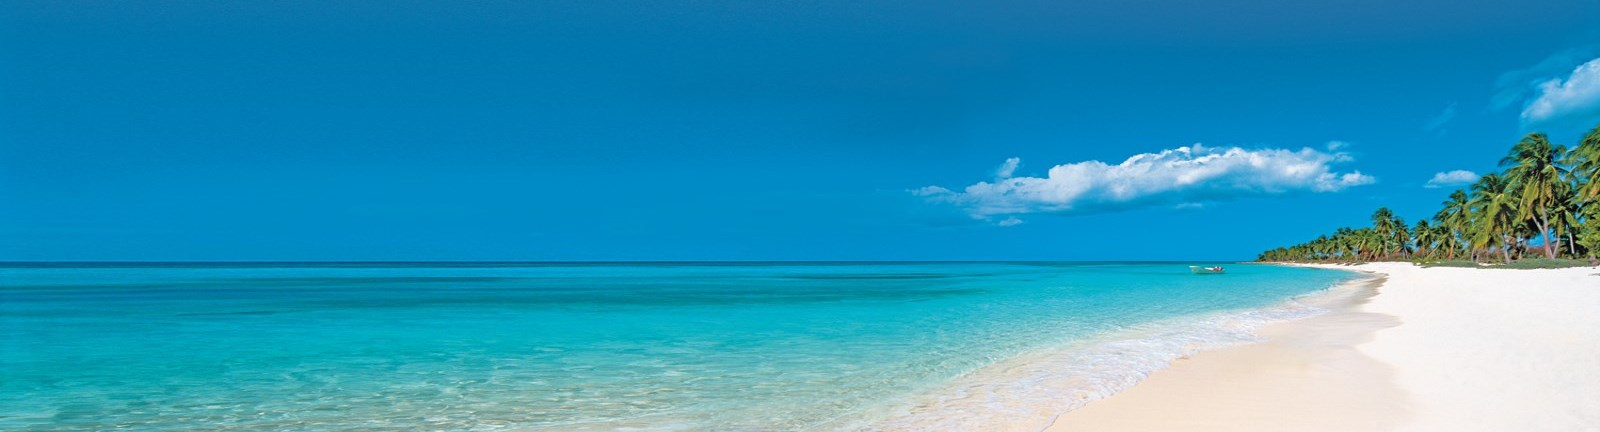 Image of beach in Punta Cana